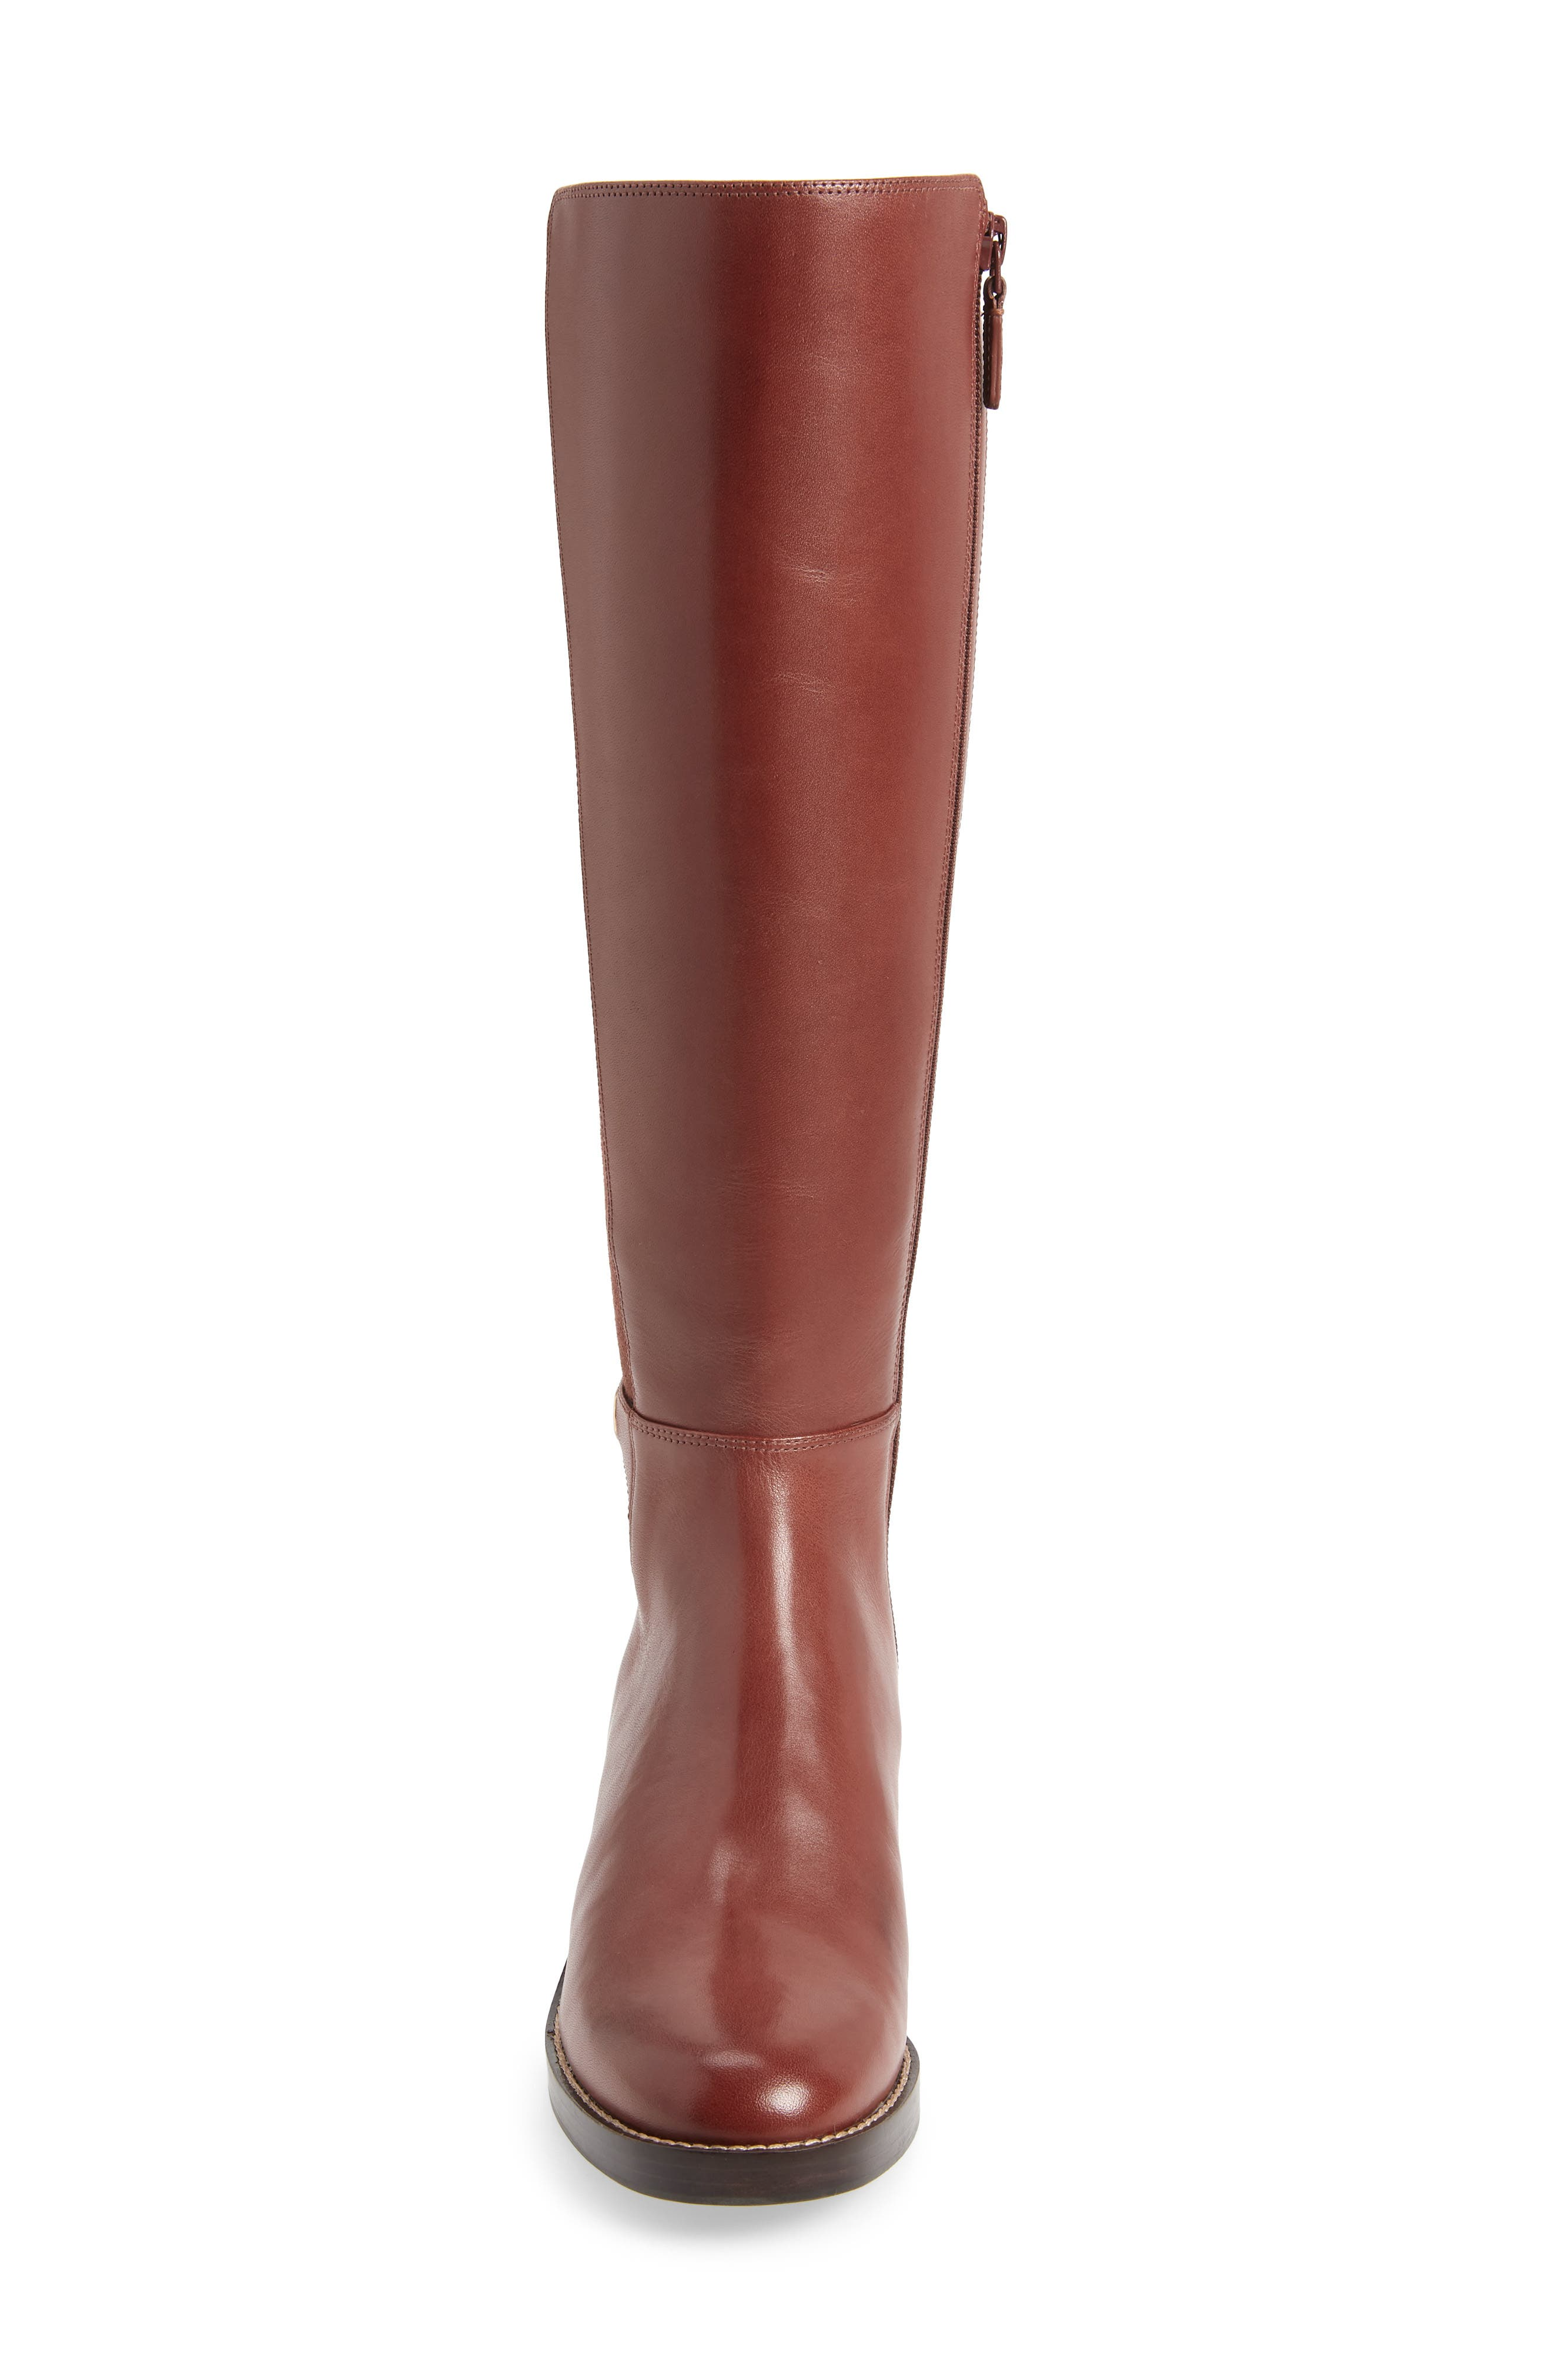 Parker Grand Stretch Knee High Boot,                             Alternate thumbnail 4, color,                             CHERRY MAHOGANY LEATHER